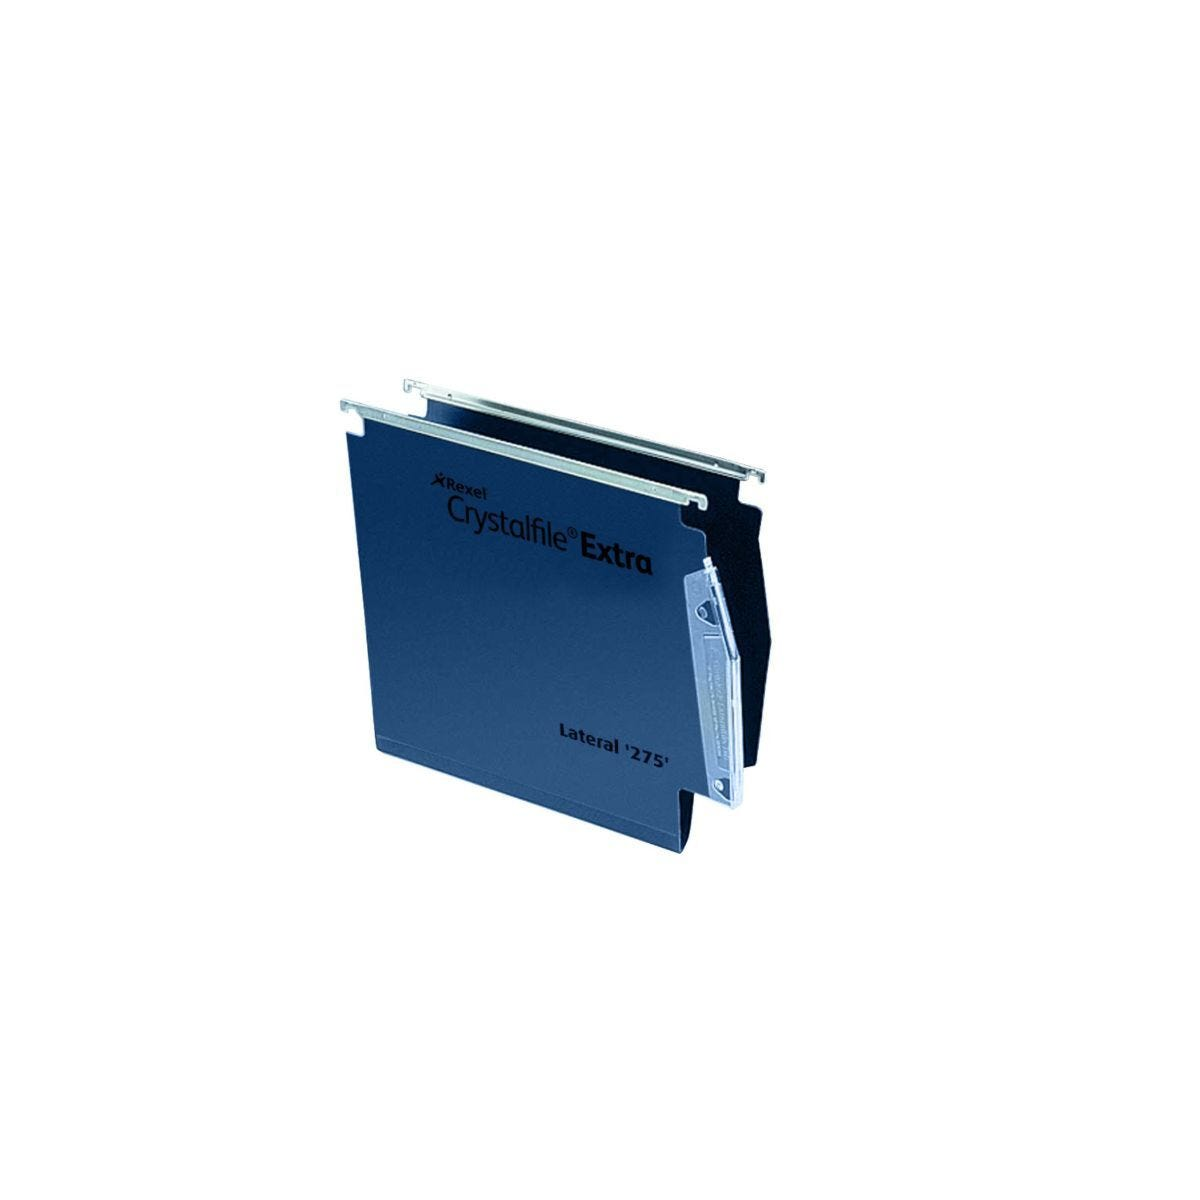 Rexel Crystalfile Extra 275 Lateral Suspension File 15mm Pack of 25 Blue